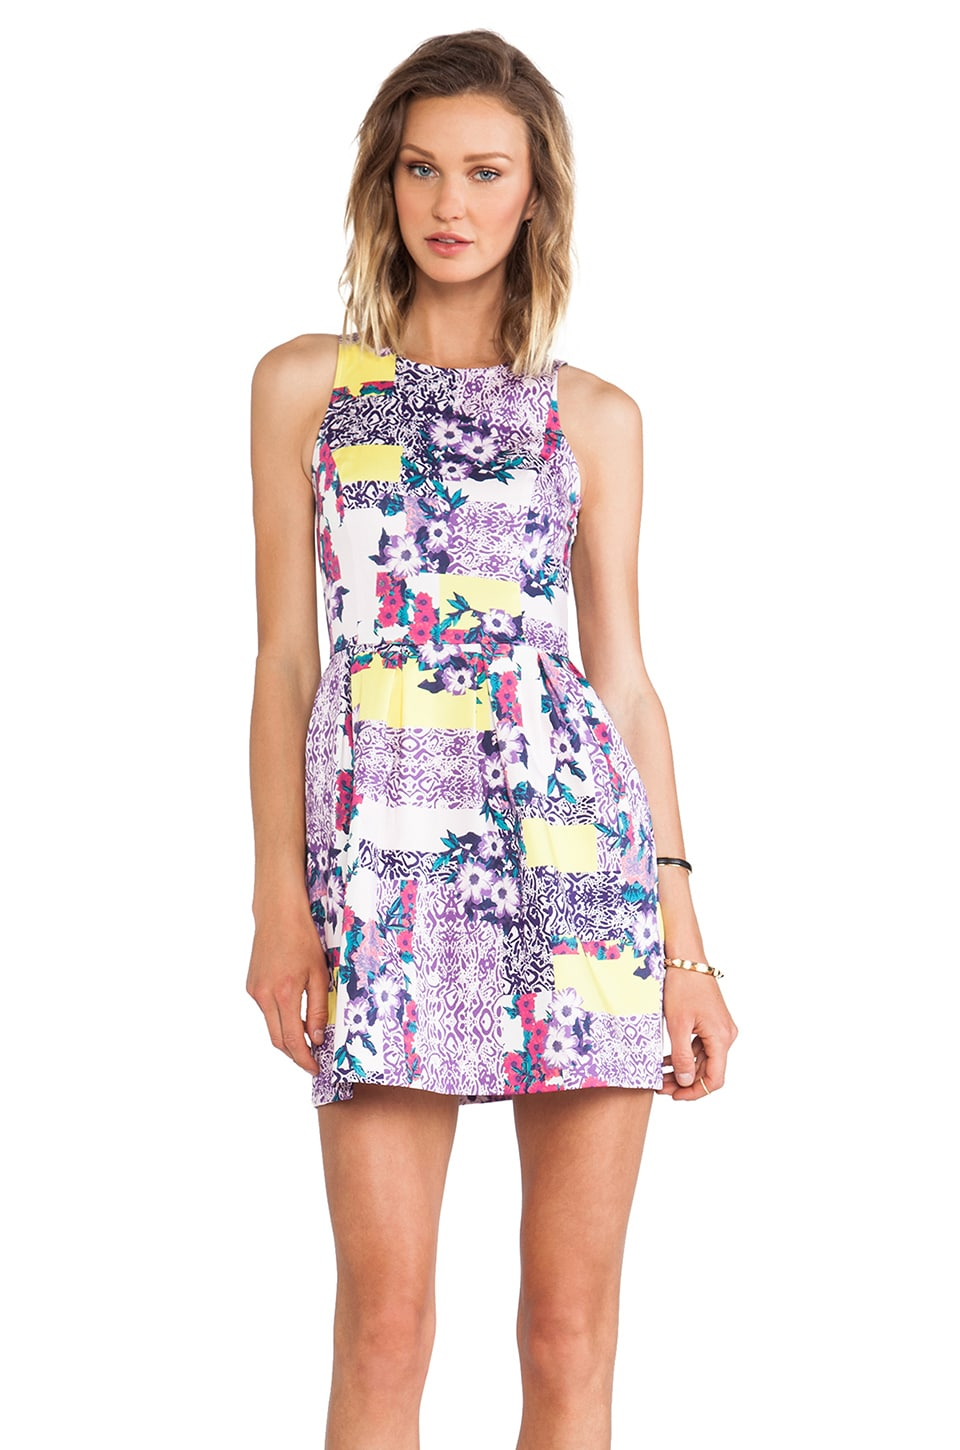 ISLA_CO Always Smiling Dress in Geo Pansy Print